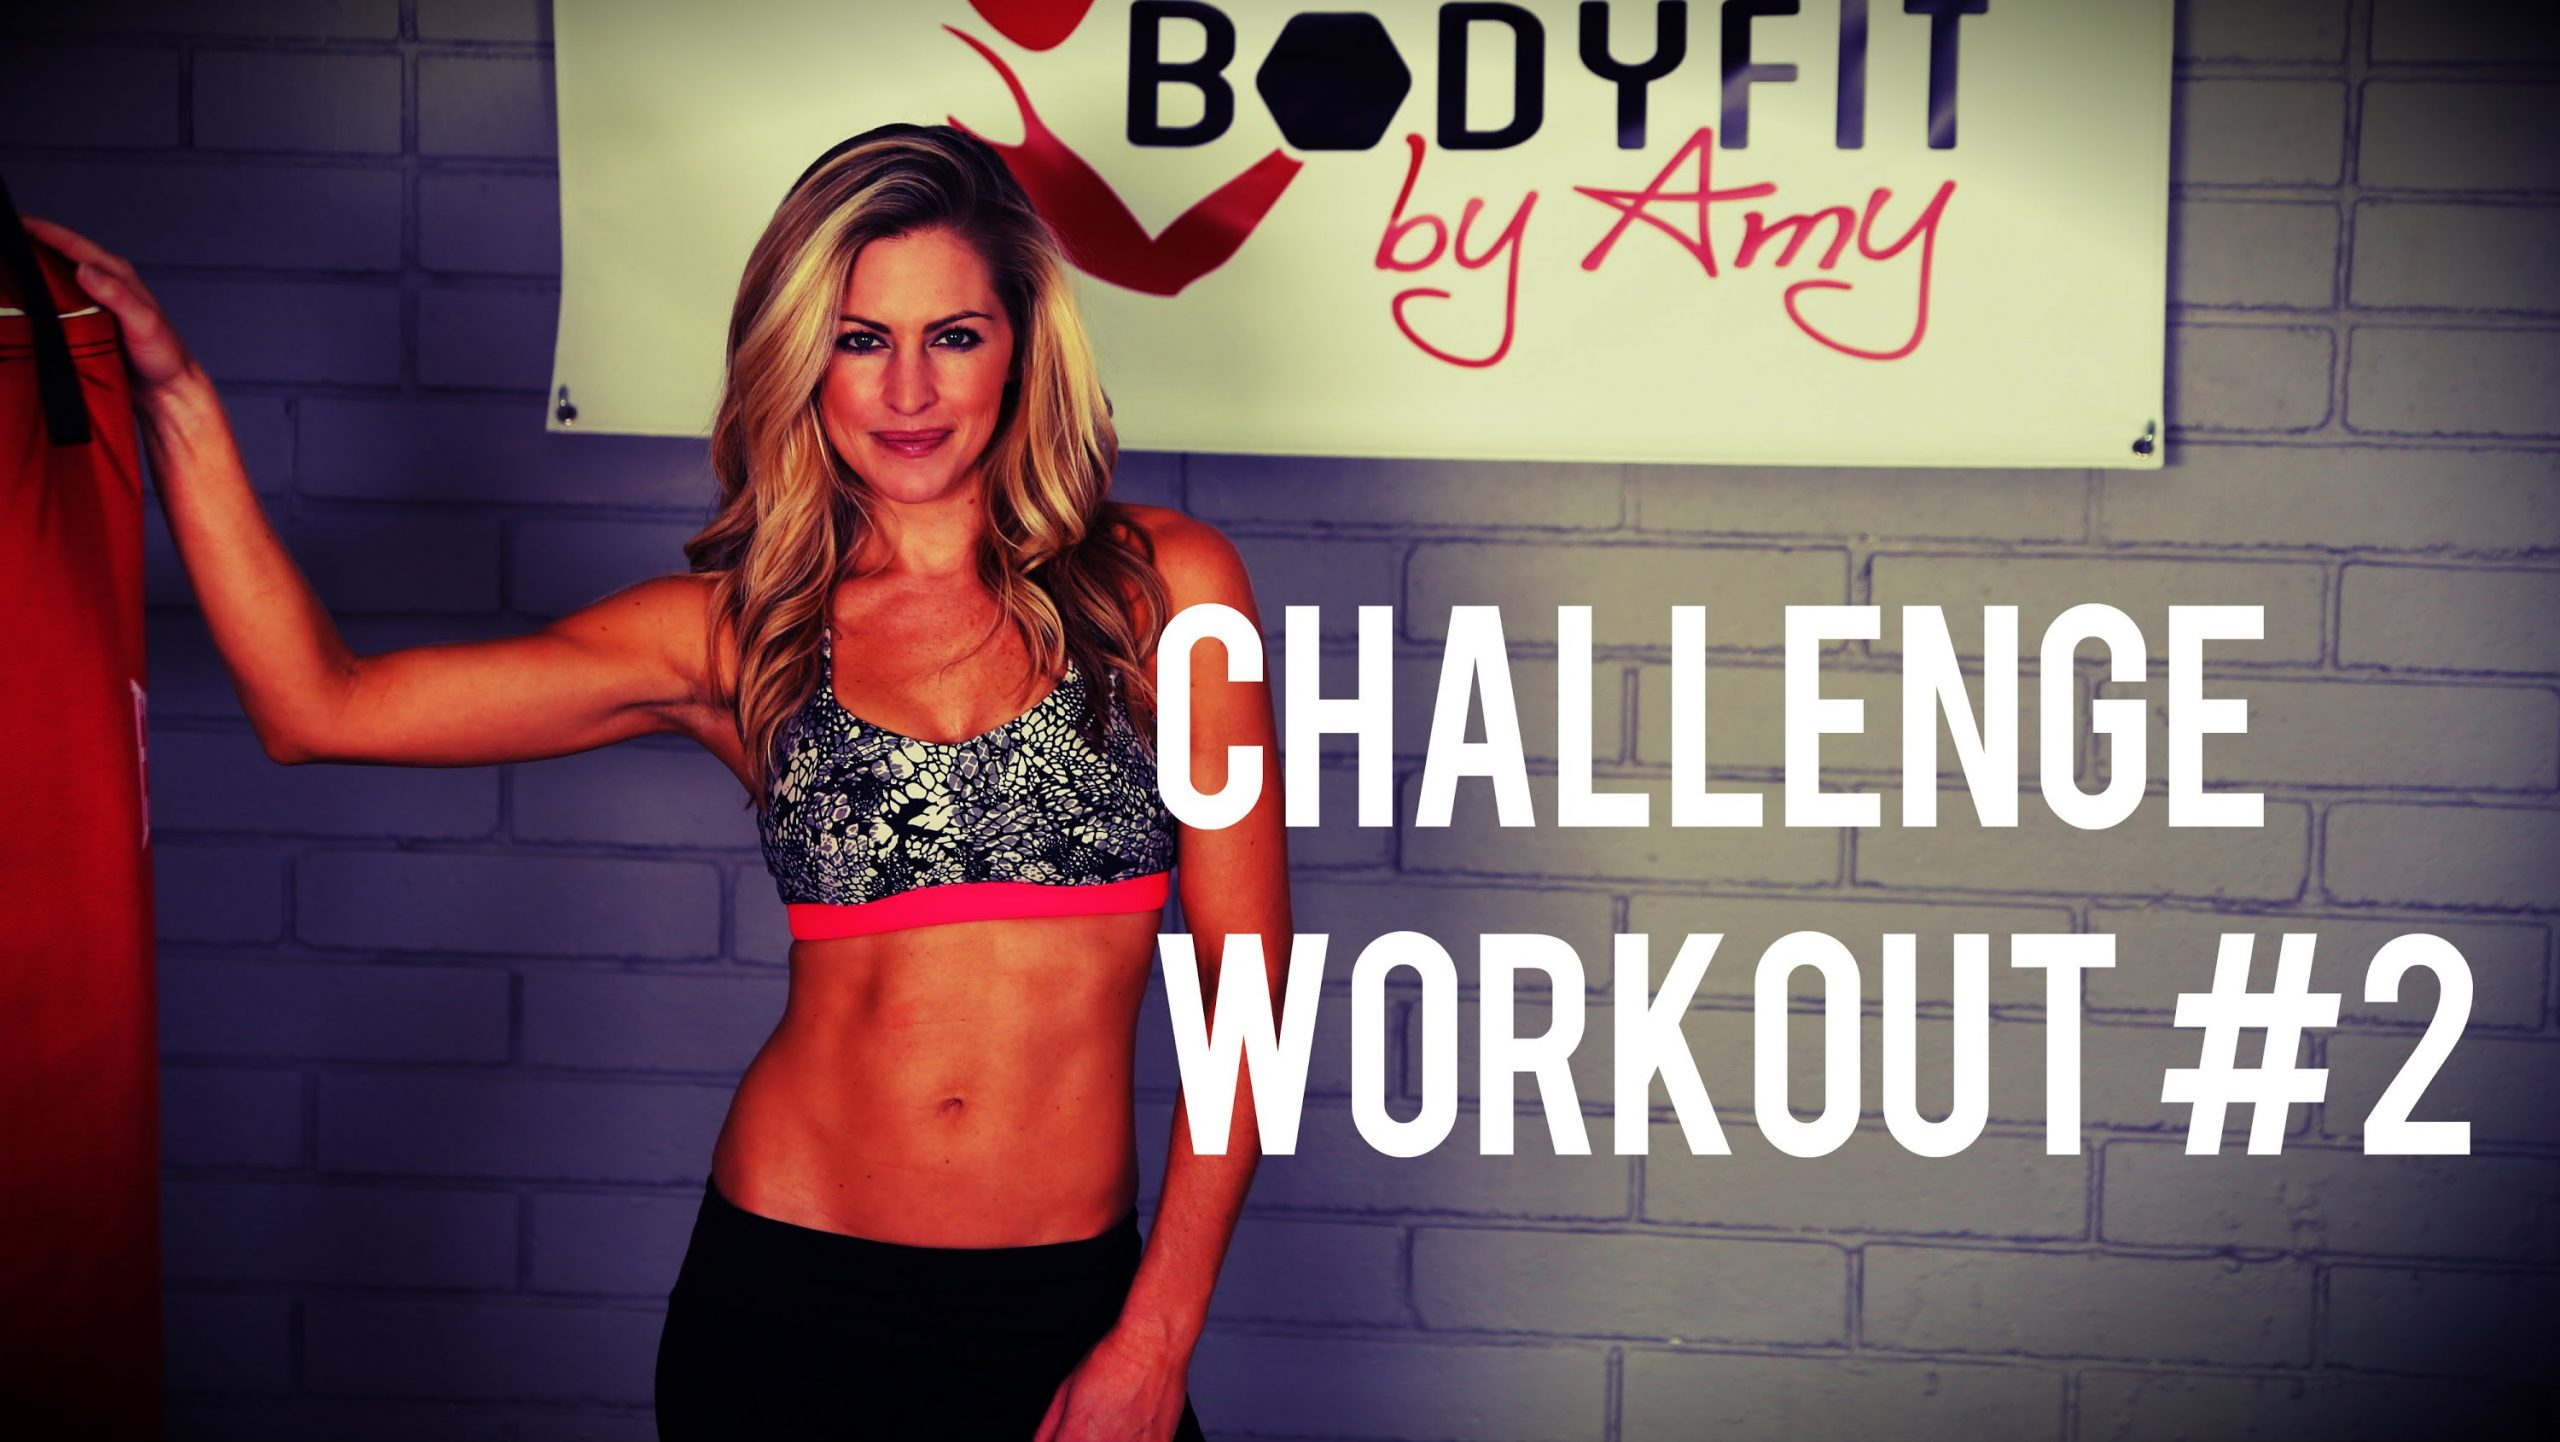 4 Week Challenge Workout — Total Body Workout with Dumbbells